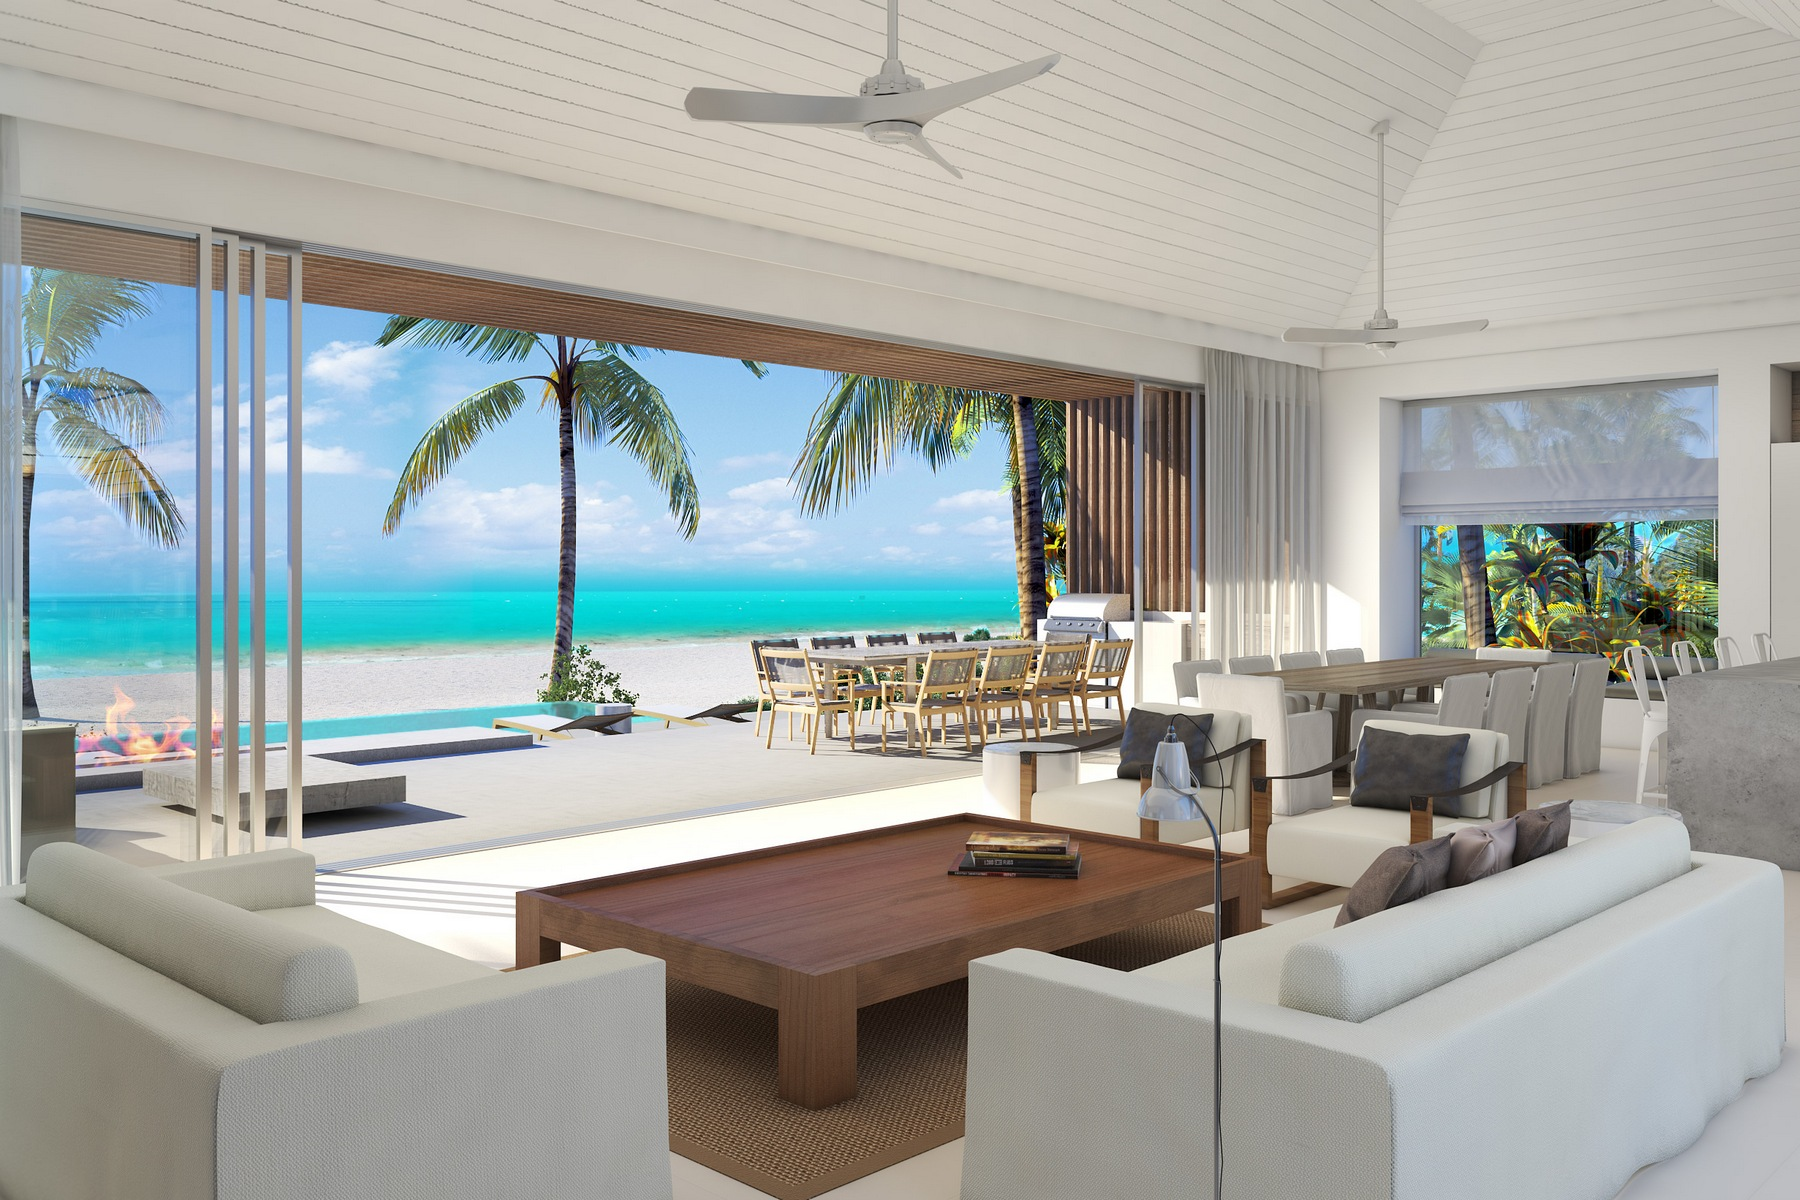 Villa per Vendita alle ore BE LONG BAY VILLA - Design One 5B Beachfront Long Bay, Providenciales TCI Turks E Caicos